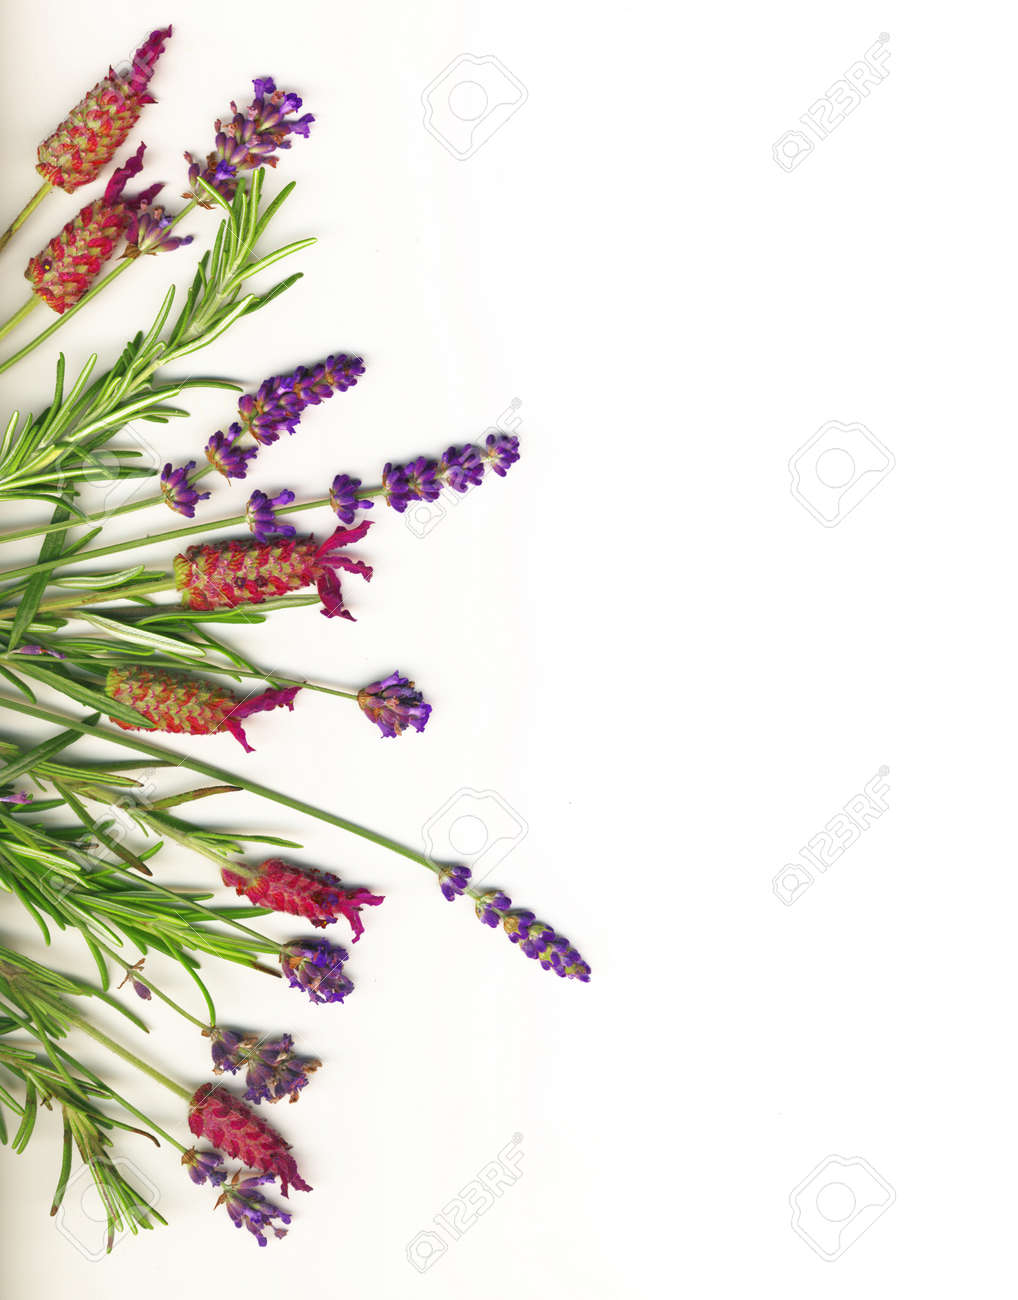 Lavender and Rosemary isolated on white Stock Photo - 11586692